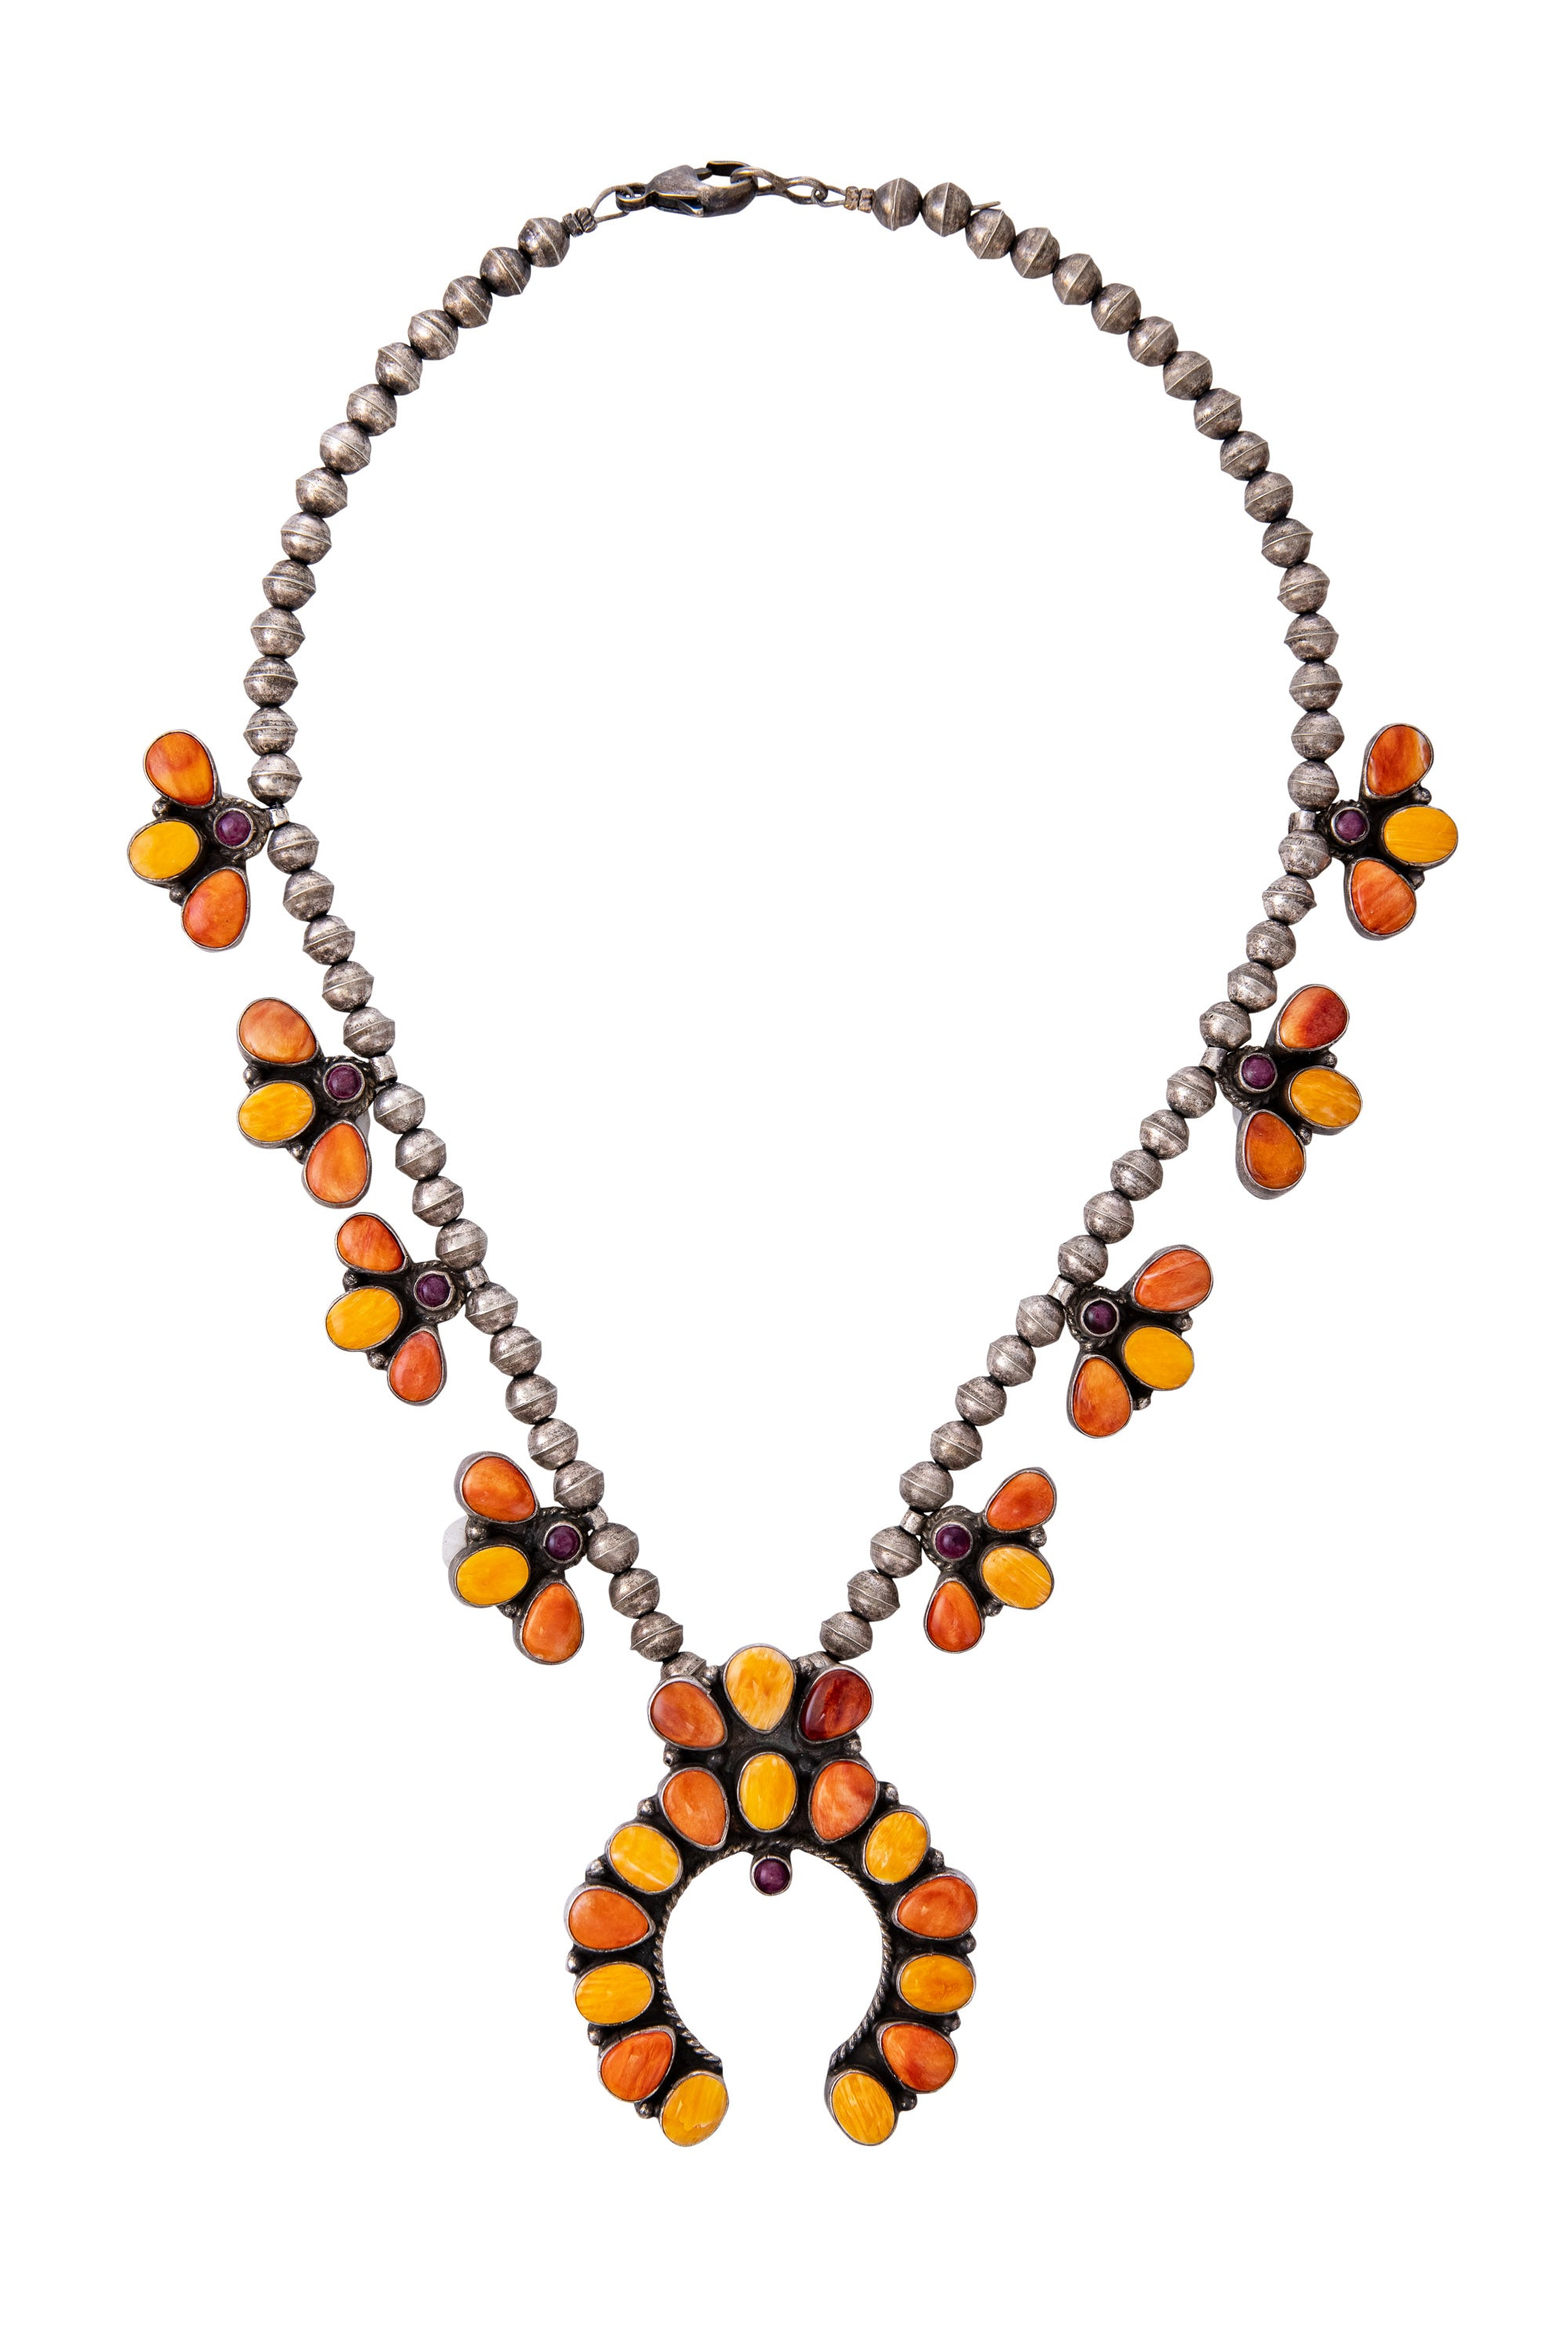 Necklace, Squash Blossom, Spiny Oyster, Orange, Hallmark, Contemporary, 1214